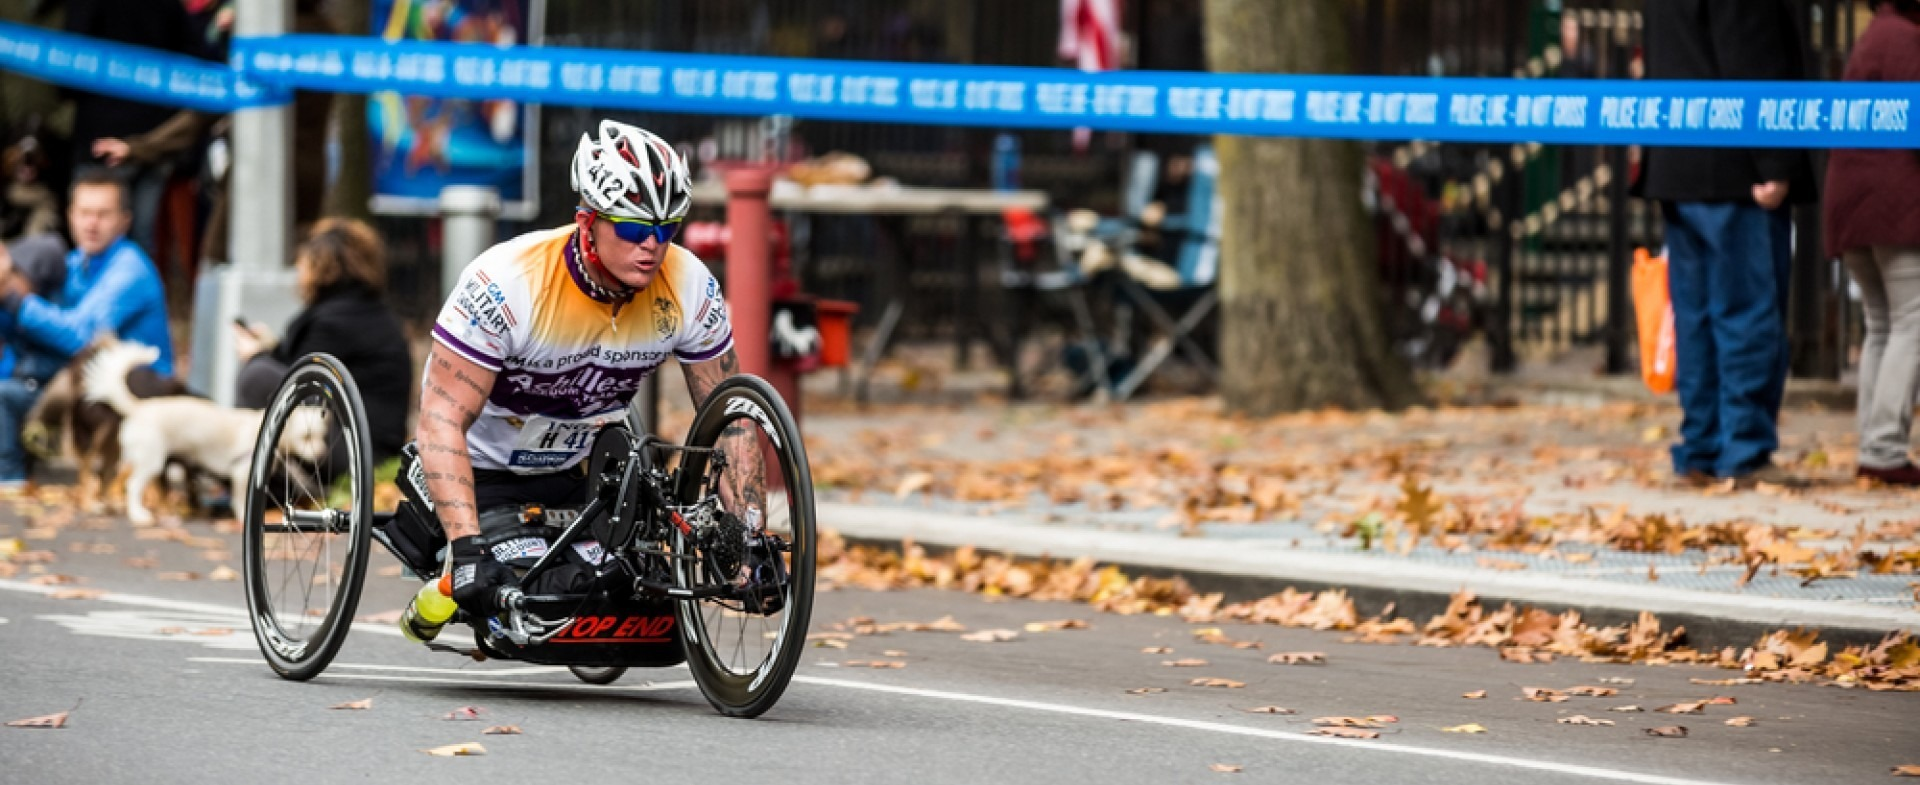 Man handcycling in a race